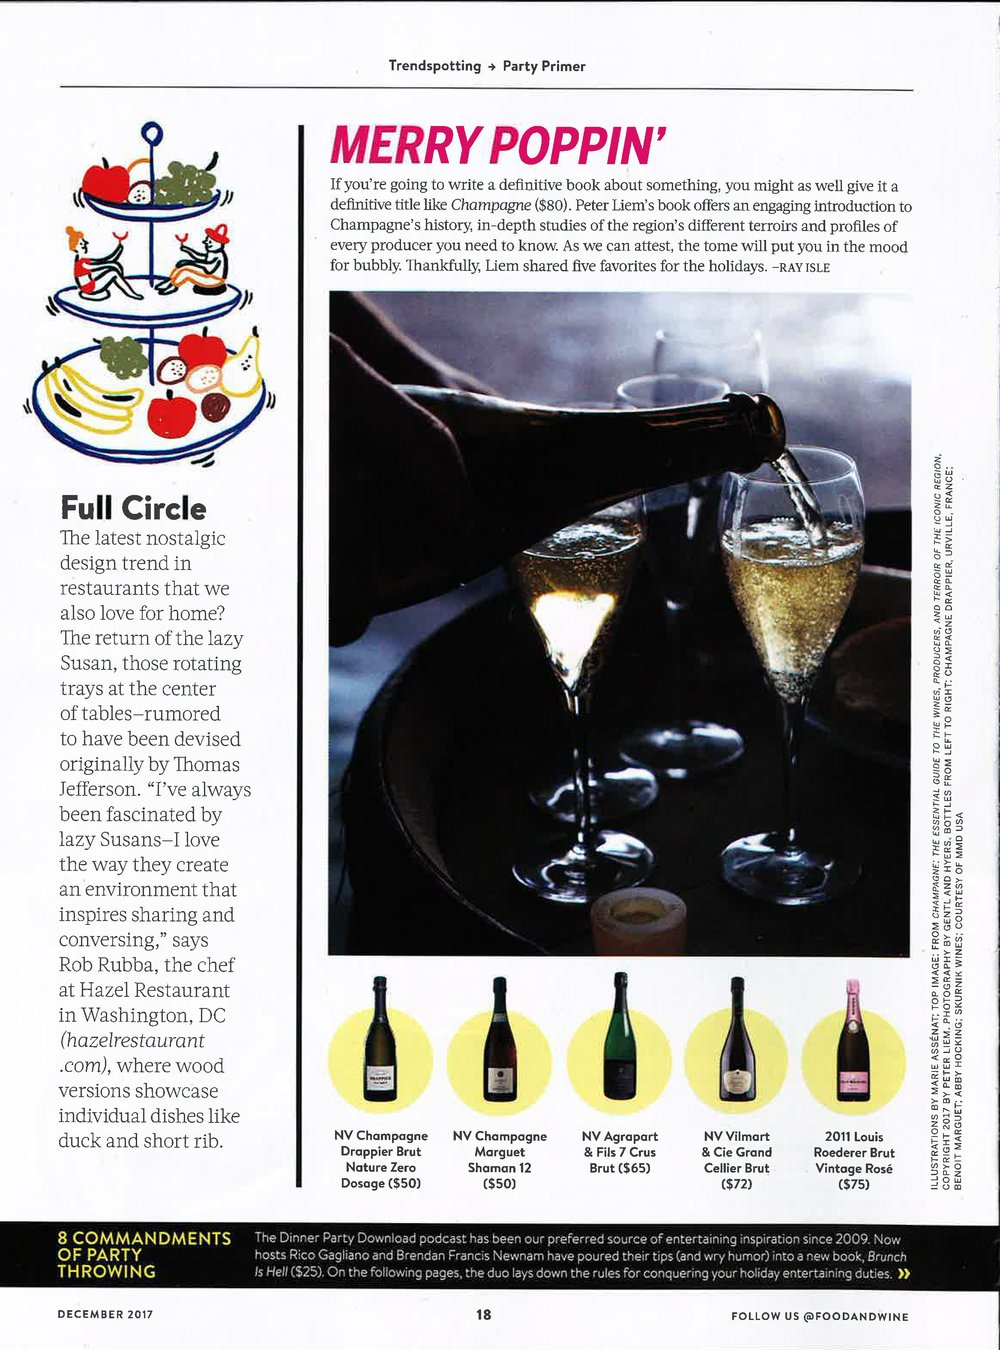 Food and Wine, December 2016